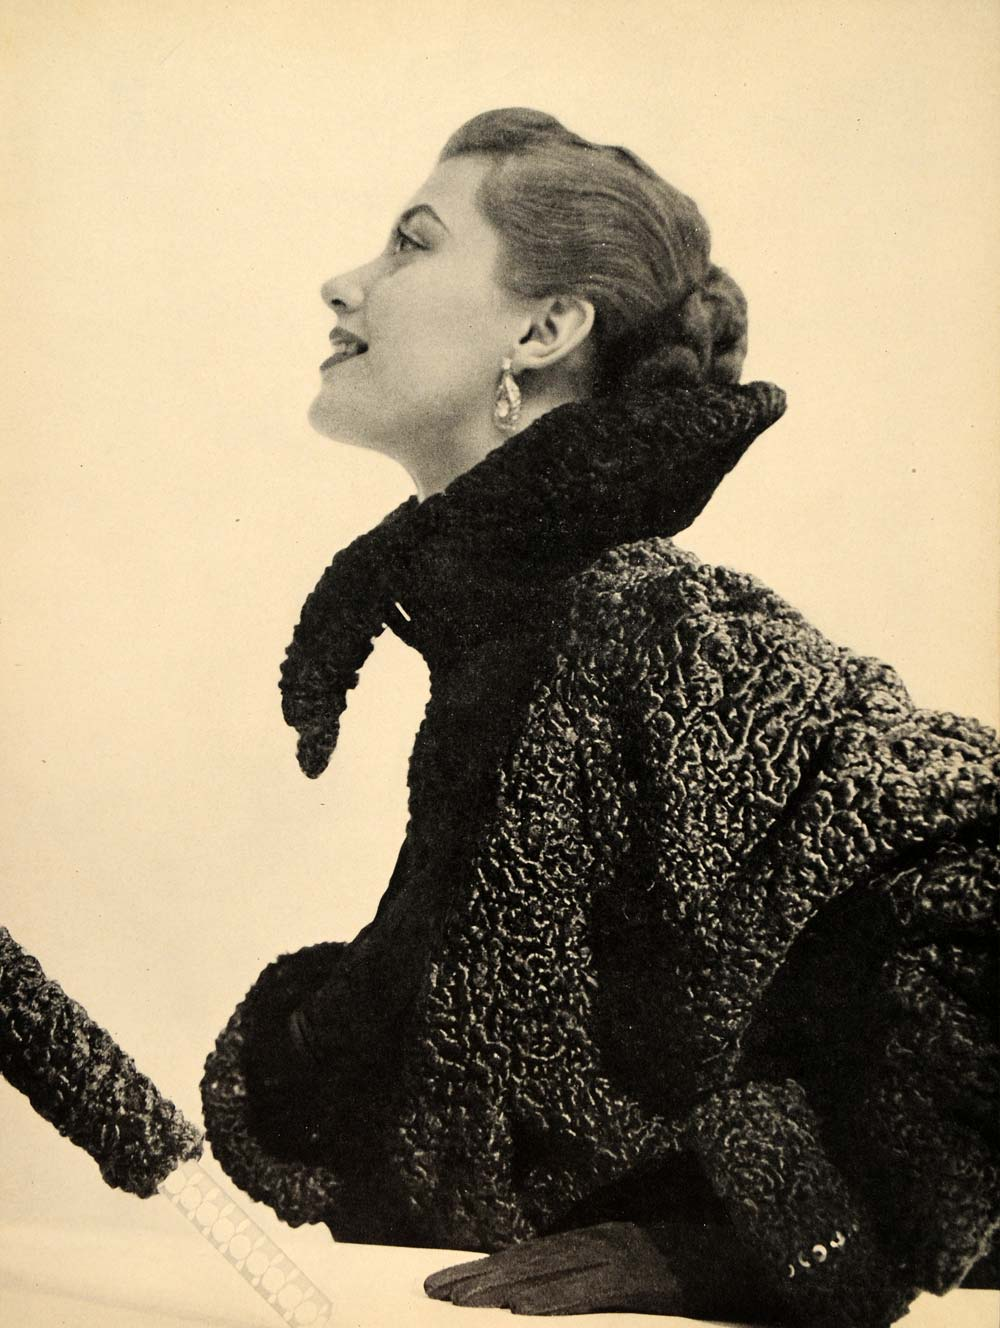 1948 Ad Vintage Persian Lamb Dyed Fur Coat Hollander Umbrella Women's Fashion